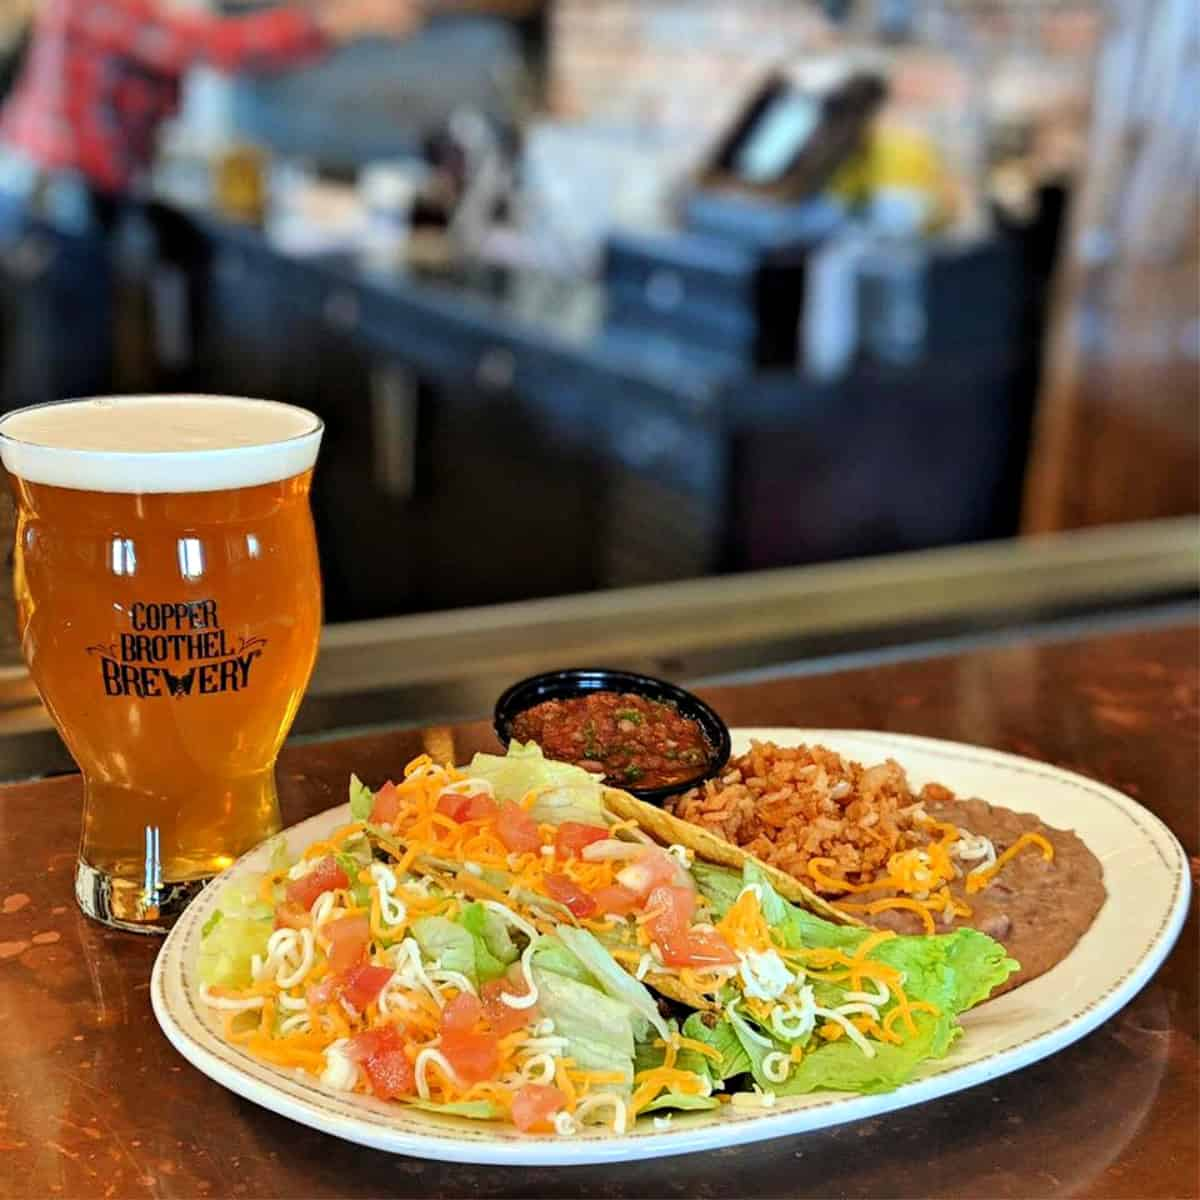 Copper Brothel tacos & glass of beer